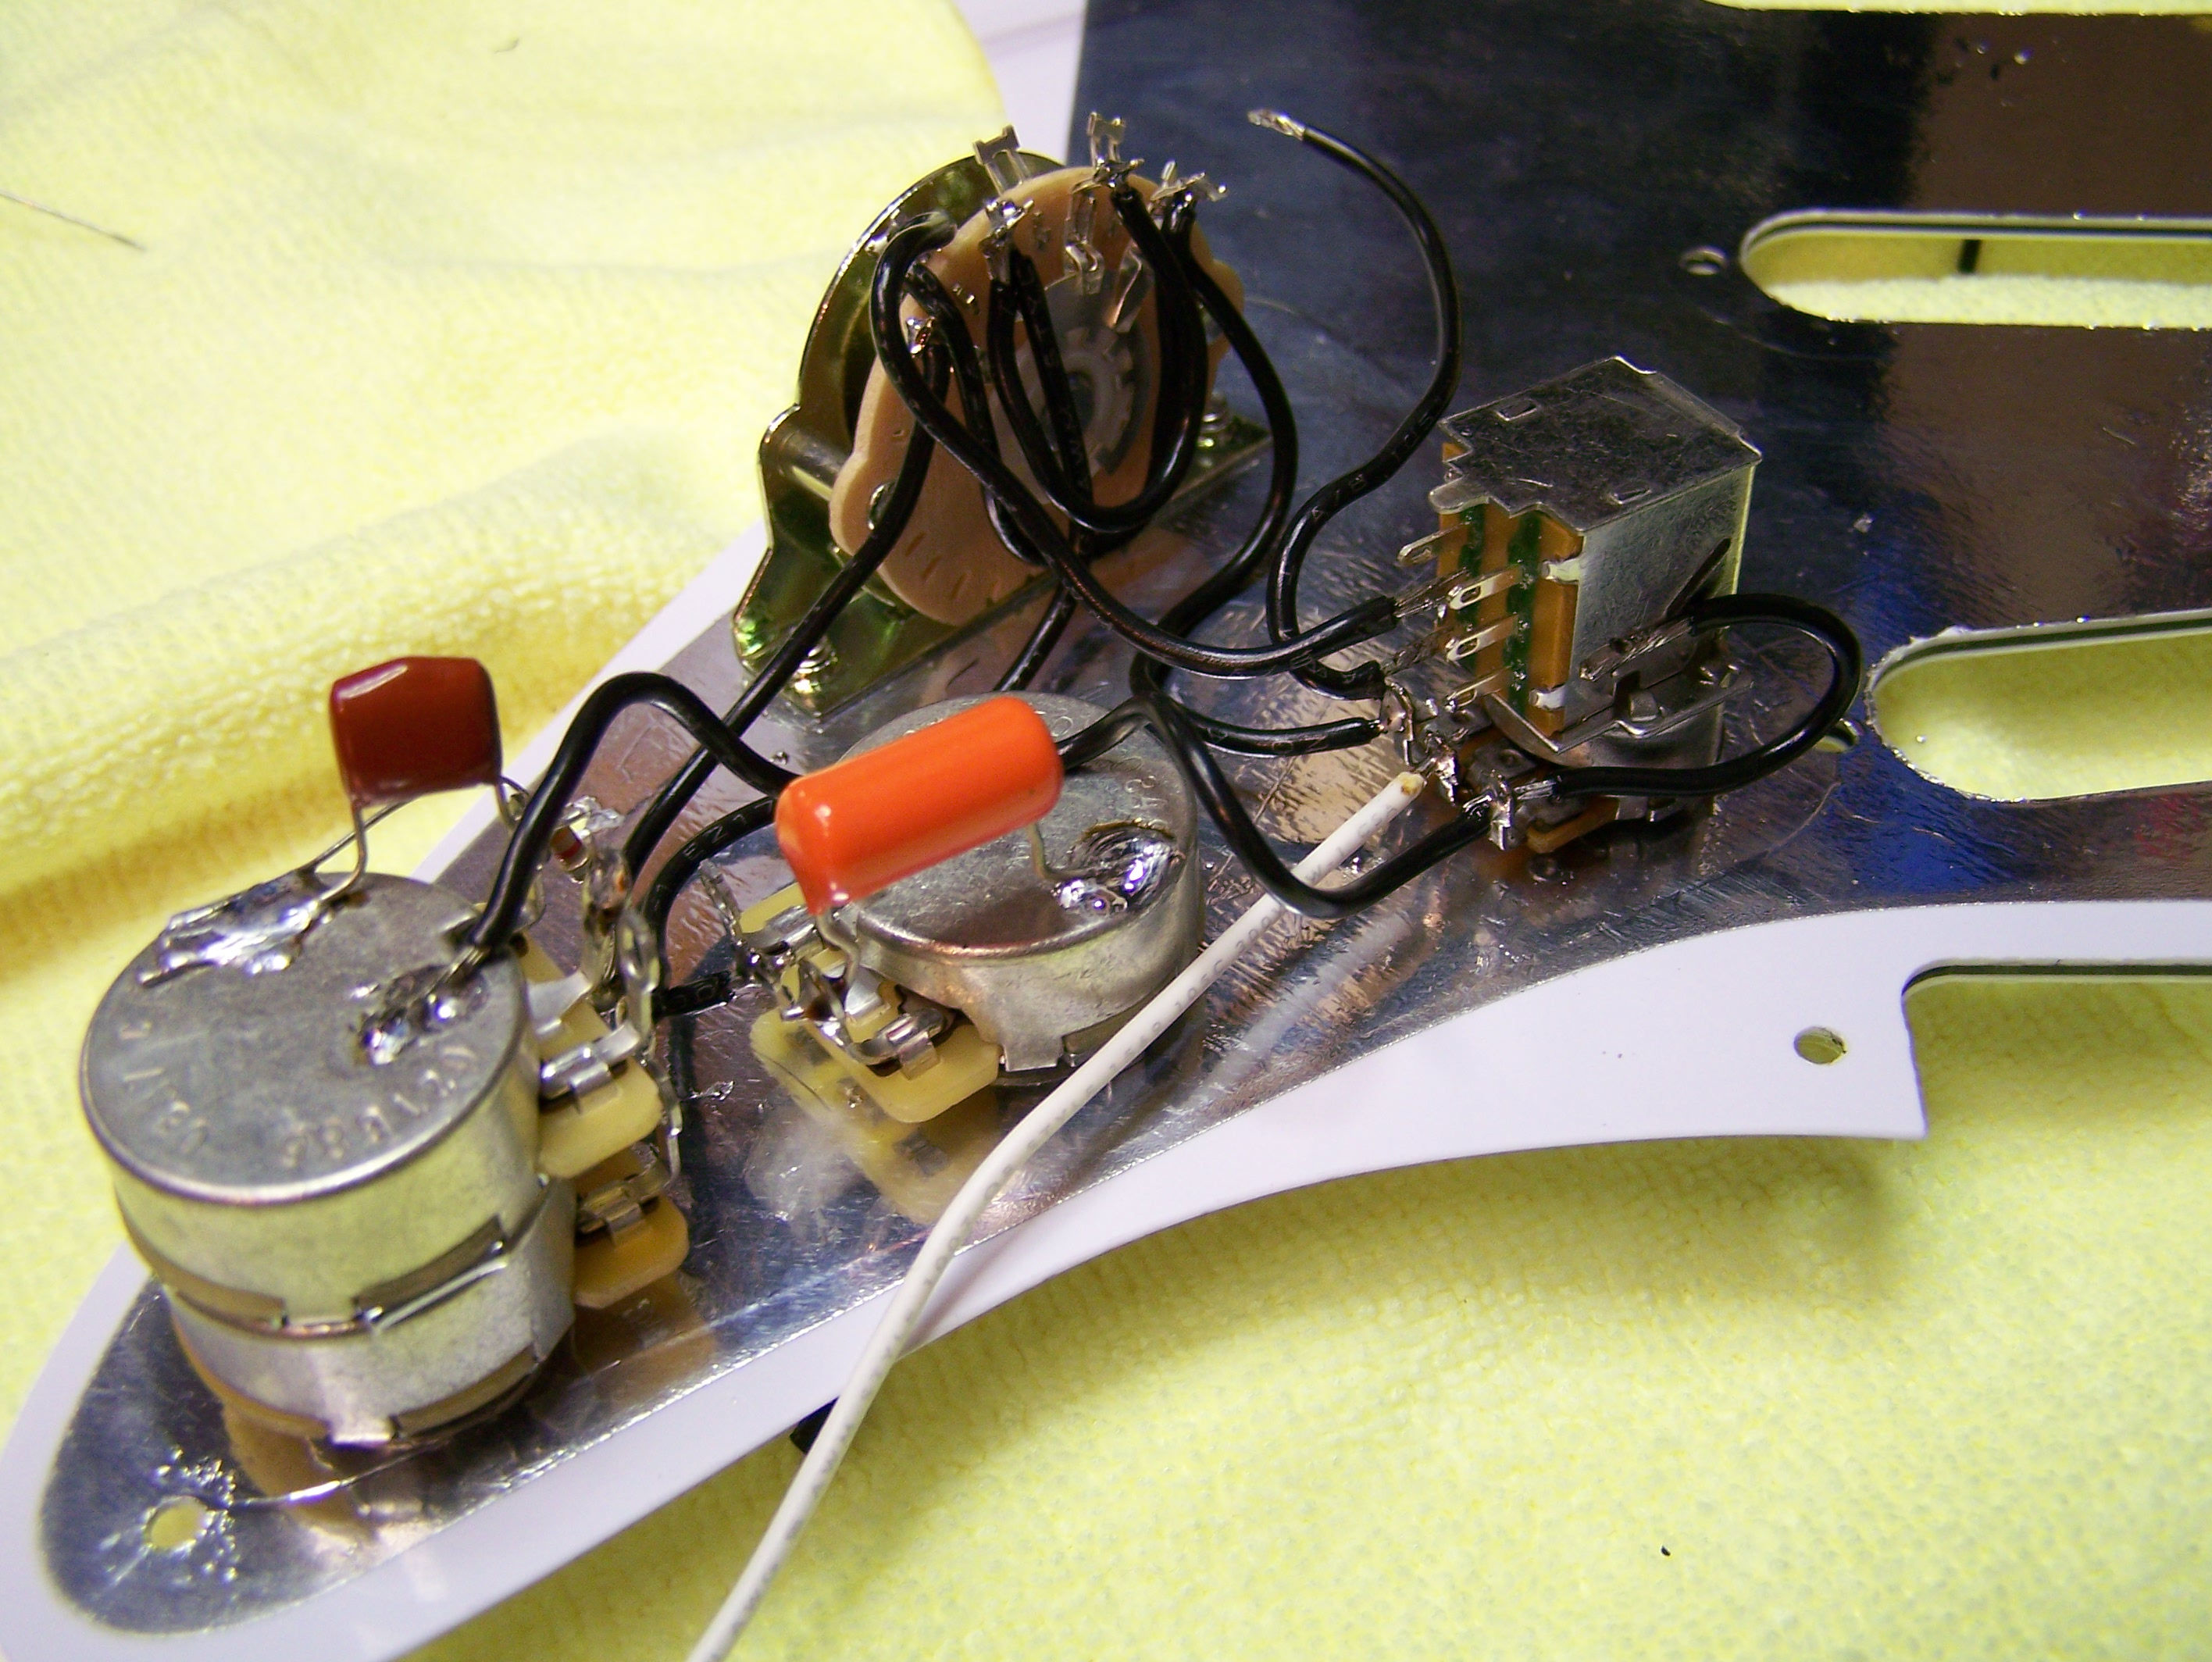 fender stratocaster tbx wiring diagram leviton 220v outlet how to wire a pickguard with 7 way